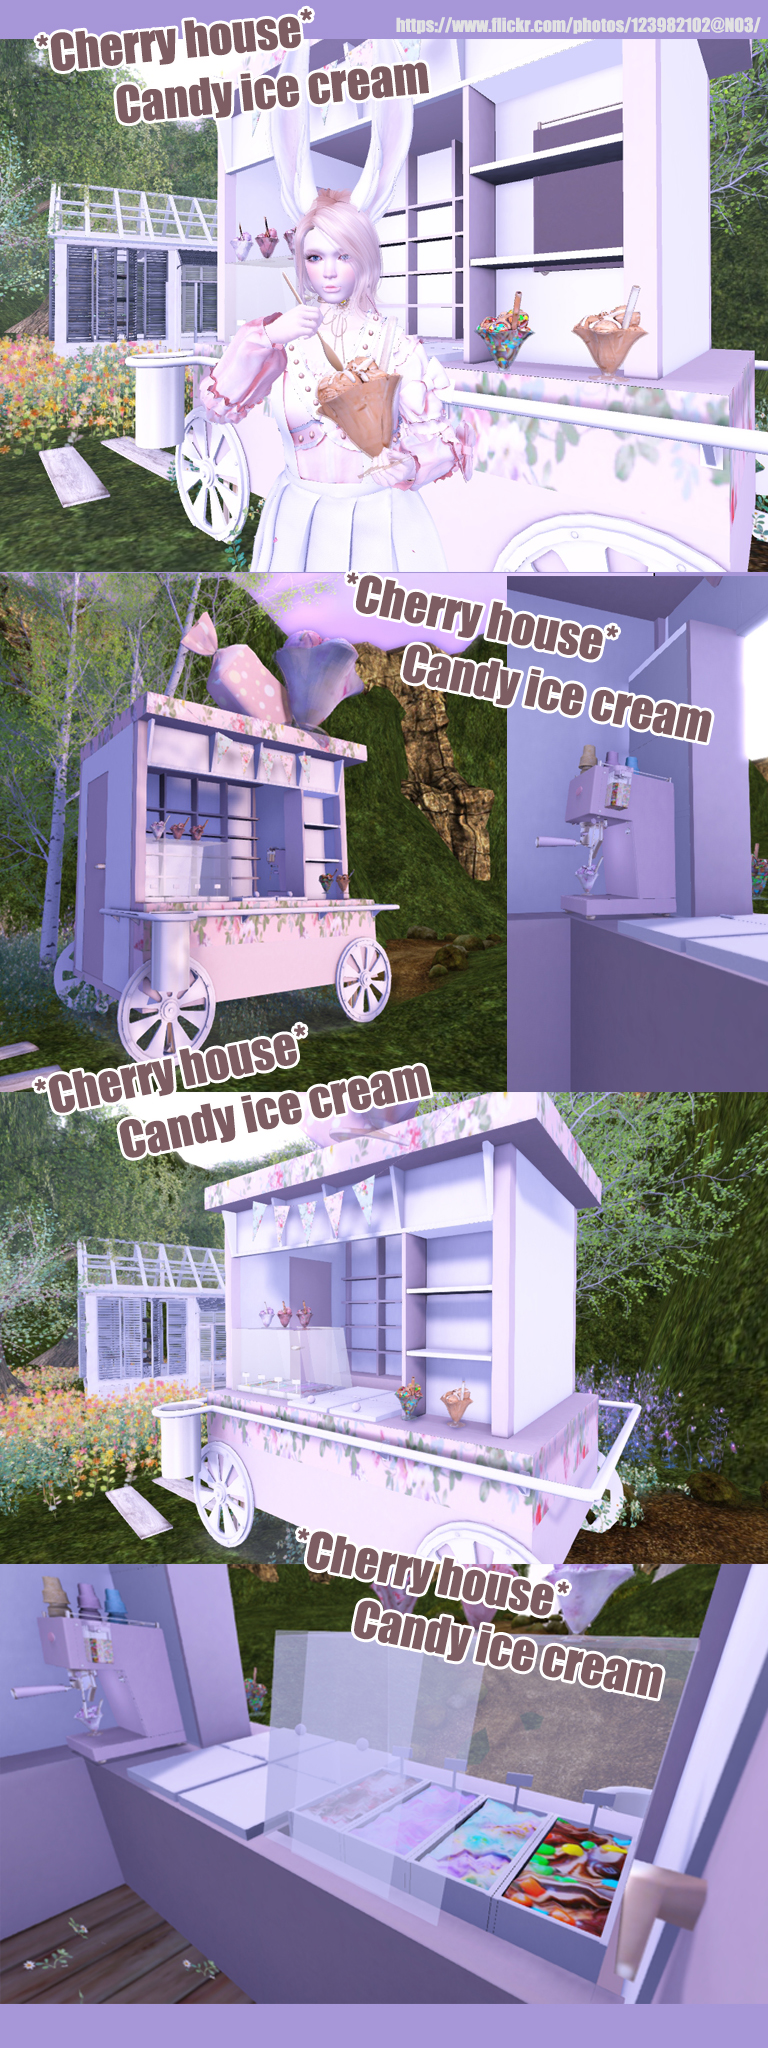 Cherry House - Candy Ice Cream